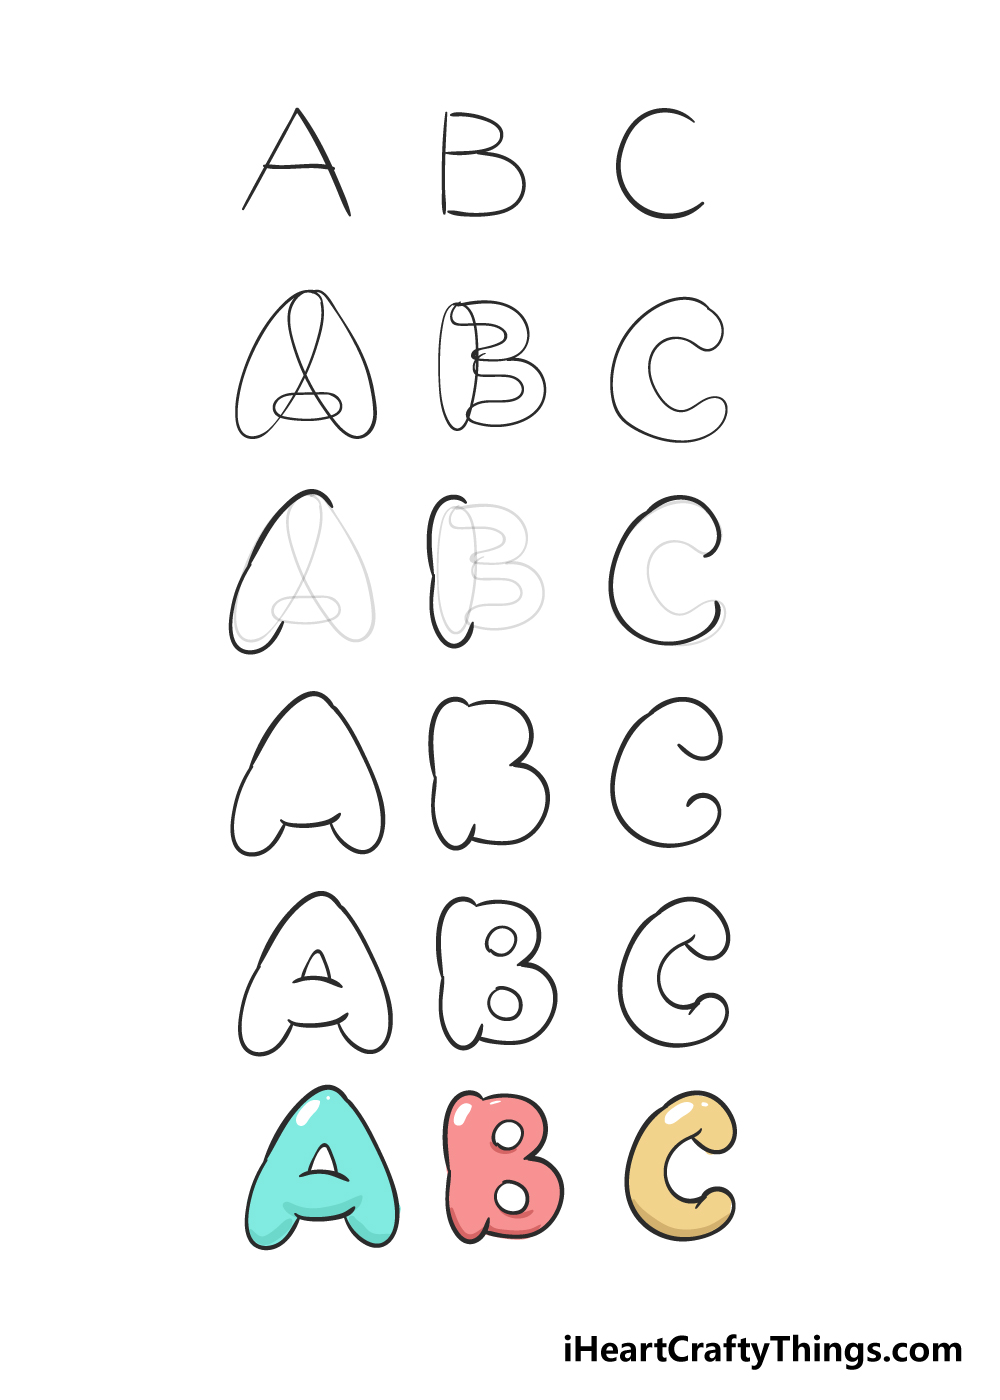 how to draw bubble letters in 6 steps